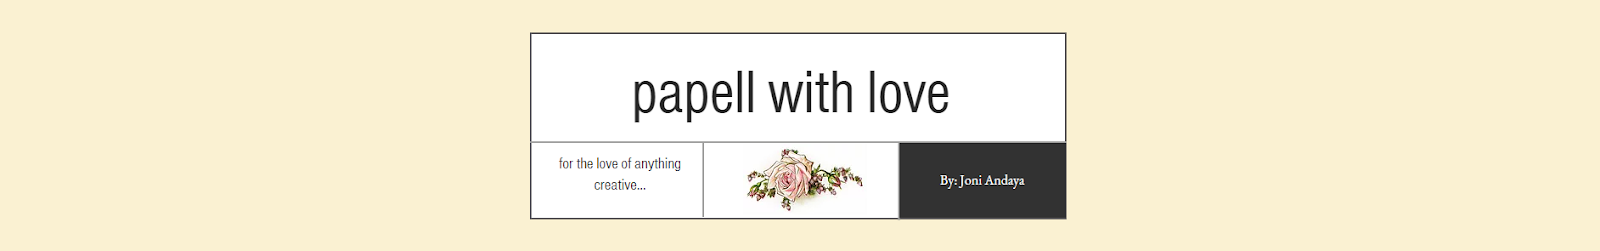 papell with love